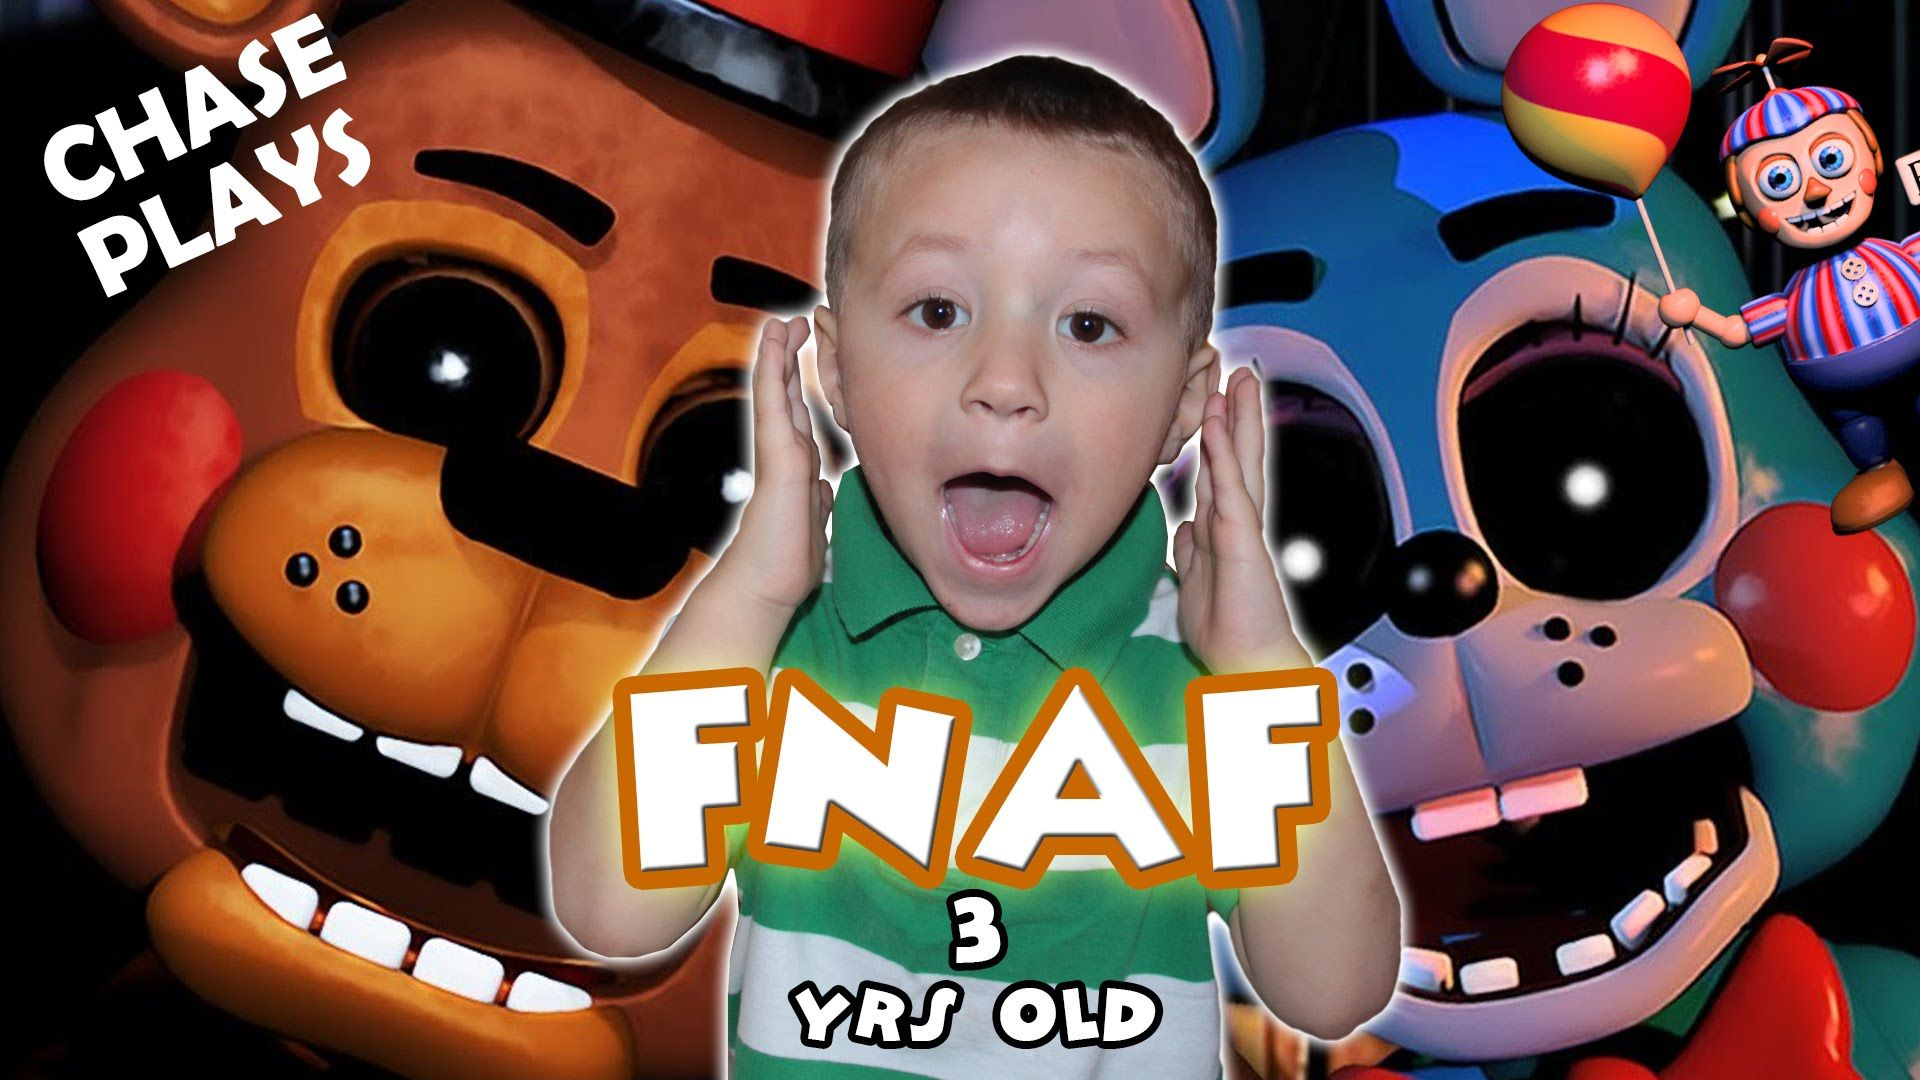 Five Nights At Freddy S 3 Year Old Gameplay Chase Plays